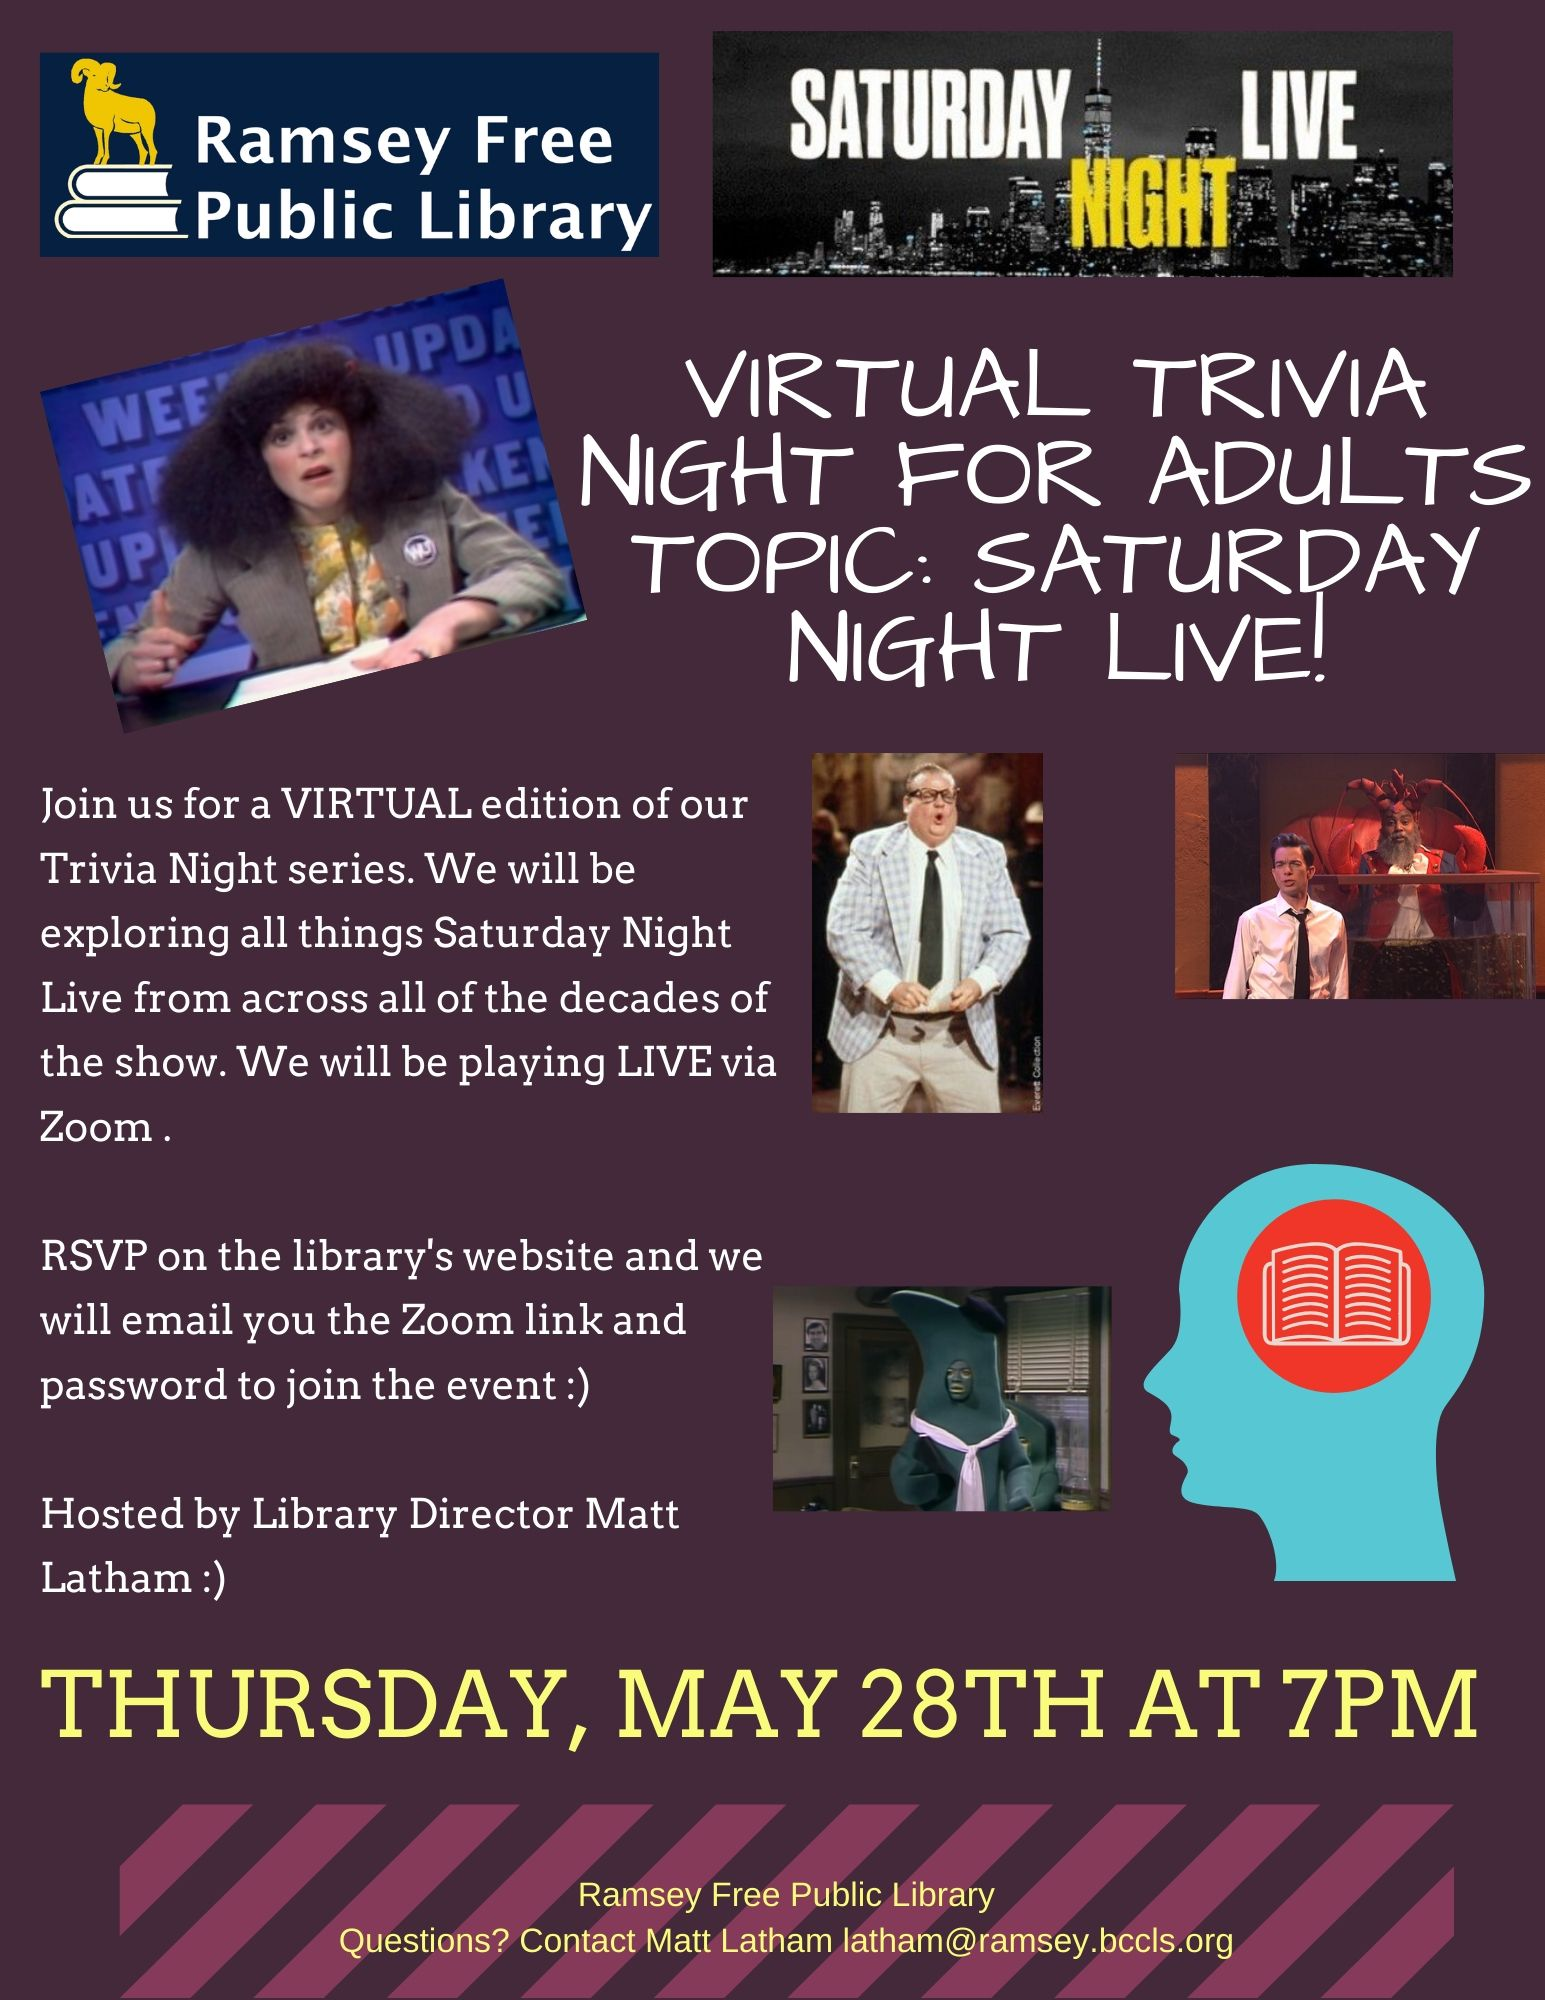 SNL Trivia Night for Adults